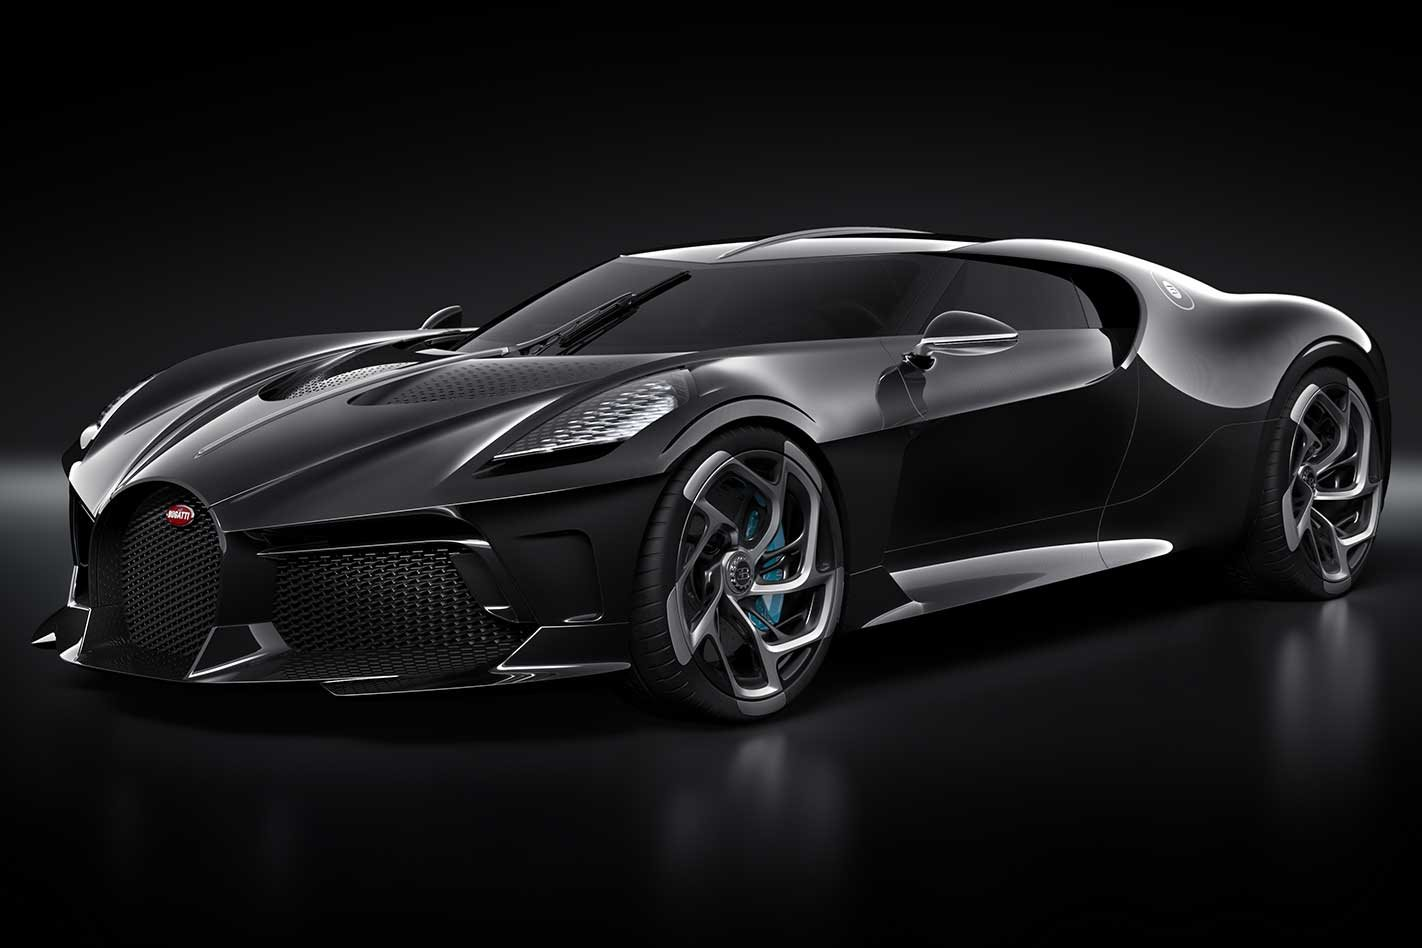 Bugatti La Voiture Noire one-off revealed at the 2019 ...